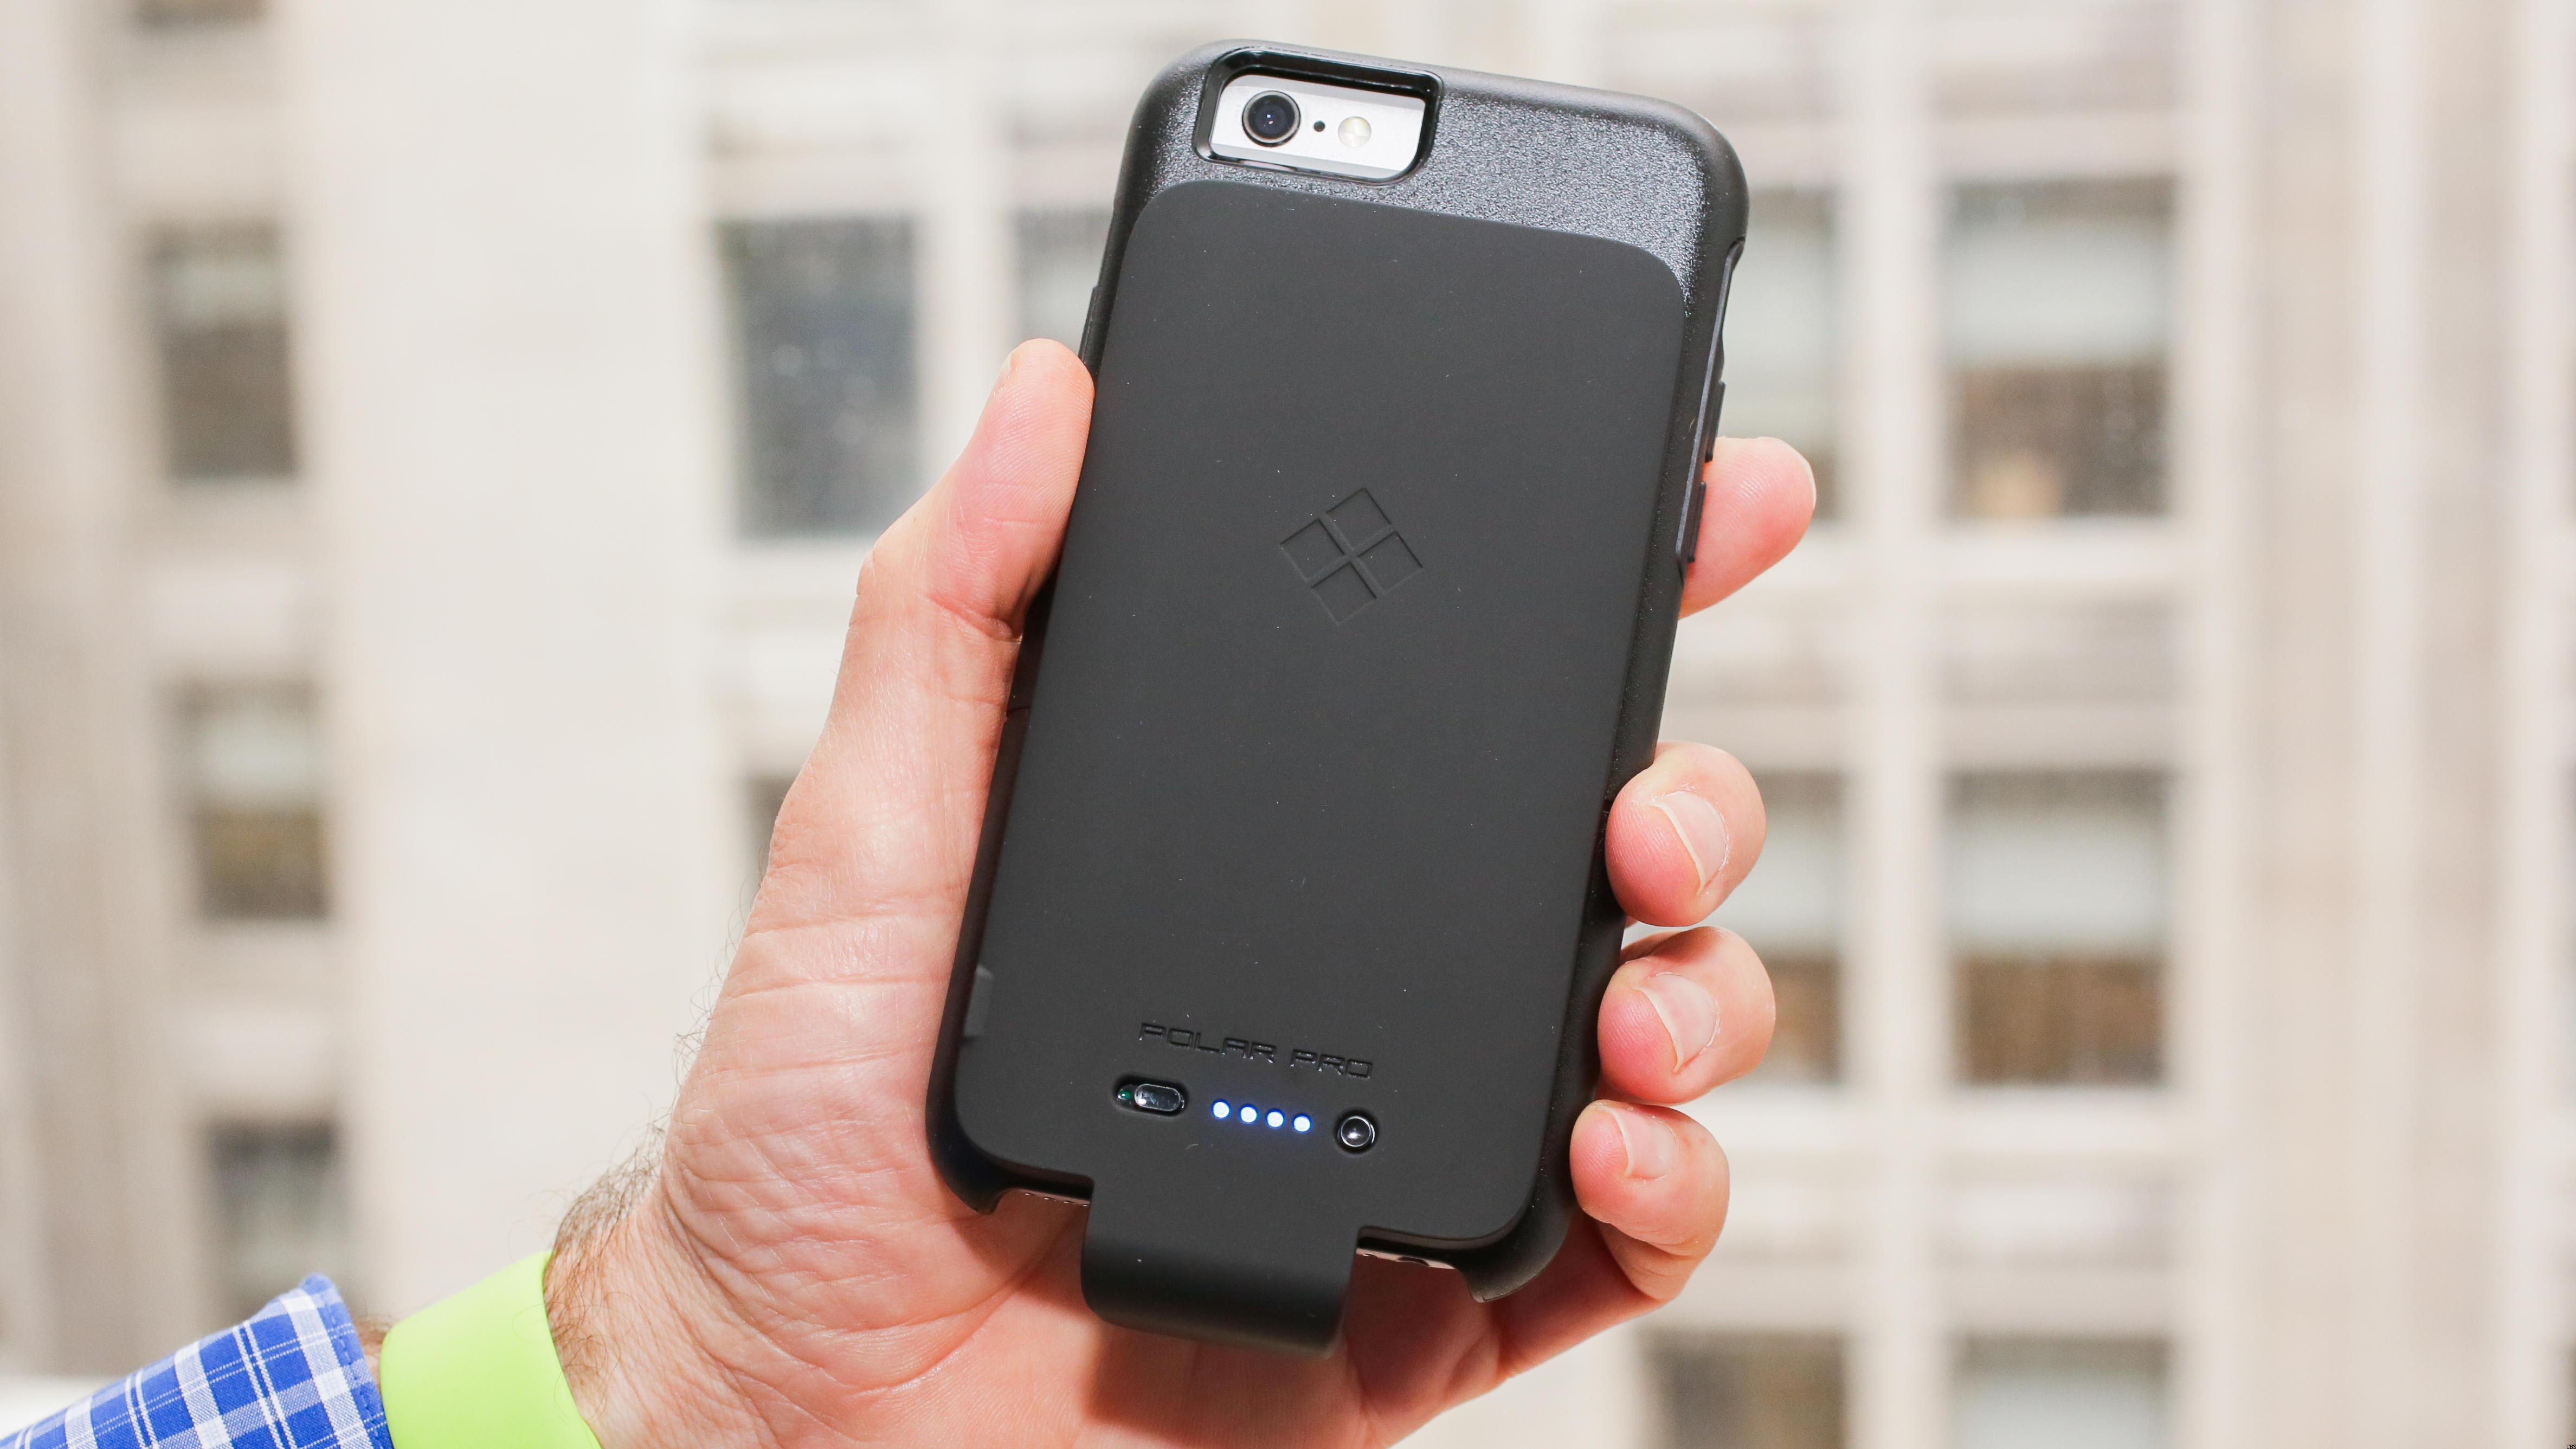 OtterBox Universe case system: It's a whole new world for iPhone accessories